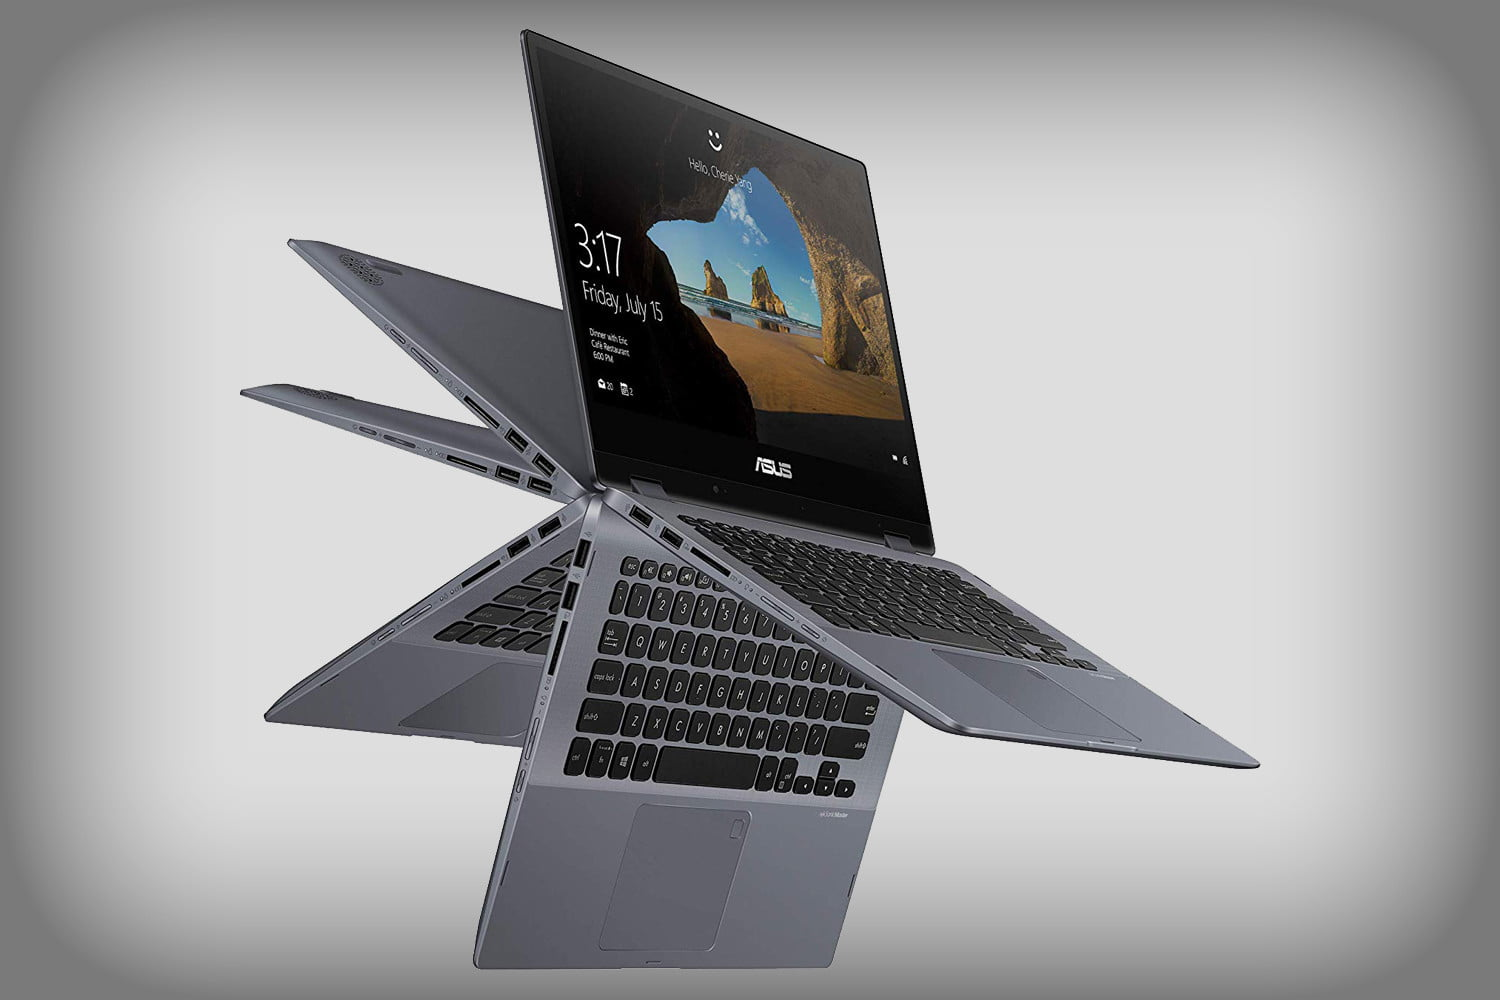 662a721f589 Amazon Deal Drops Prices on Asus VivoBook Laptops and 2-in-1s ...